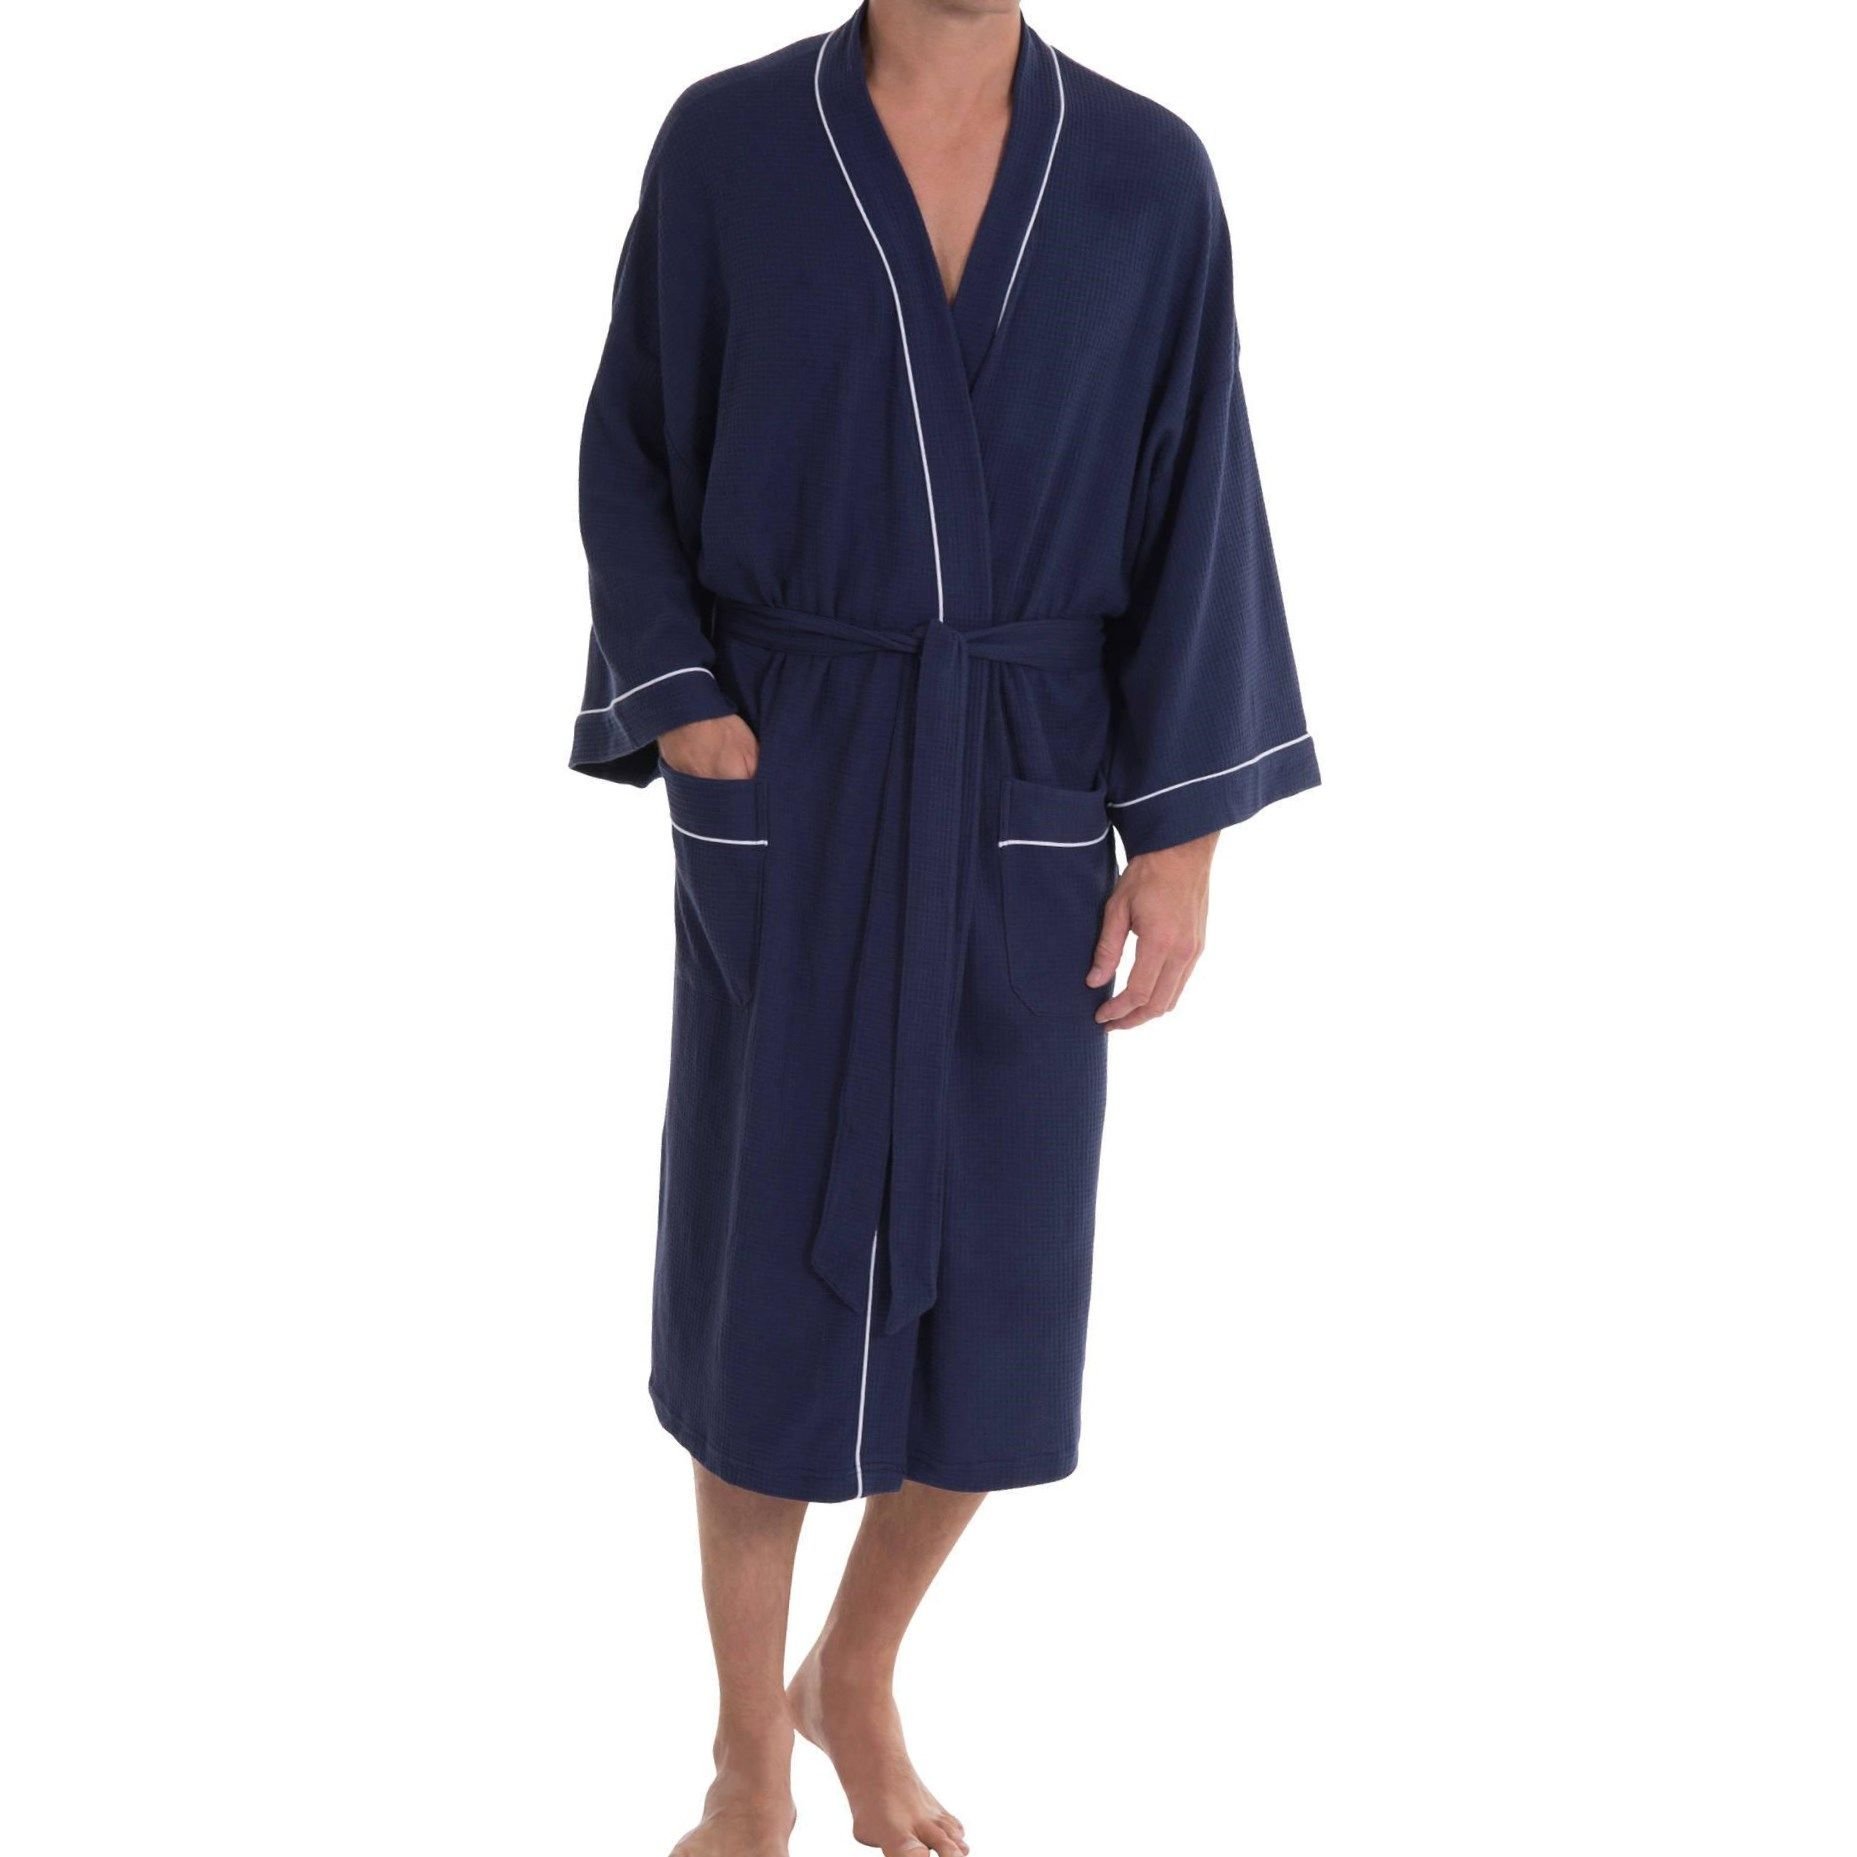 Big And Tall Pajamas For Men Breeze Clothing